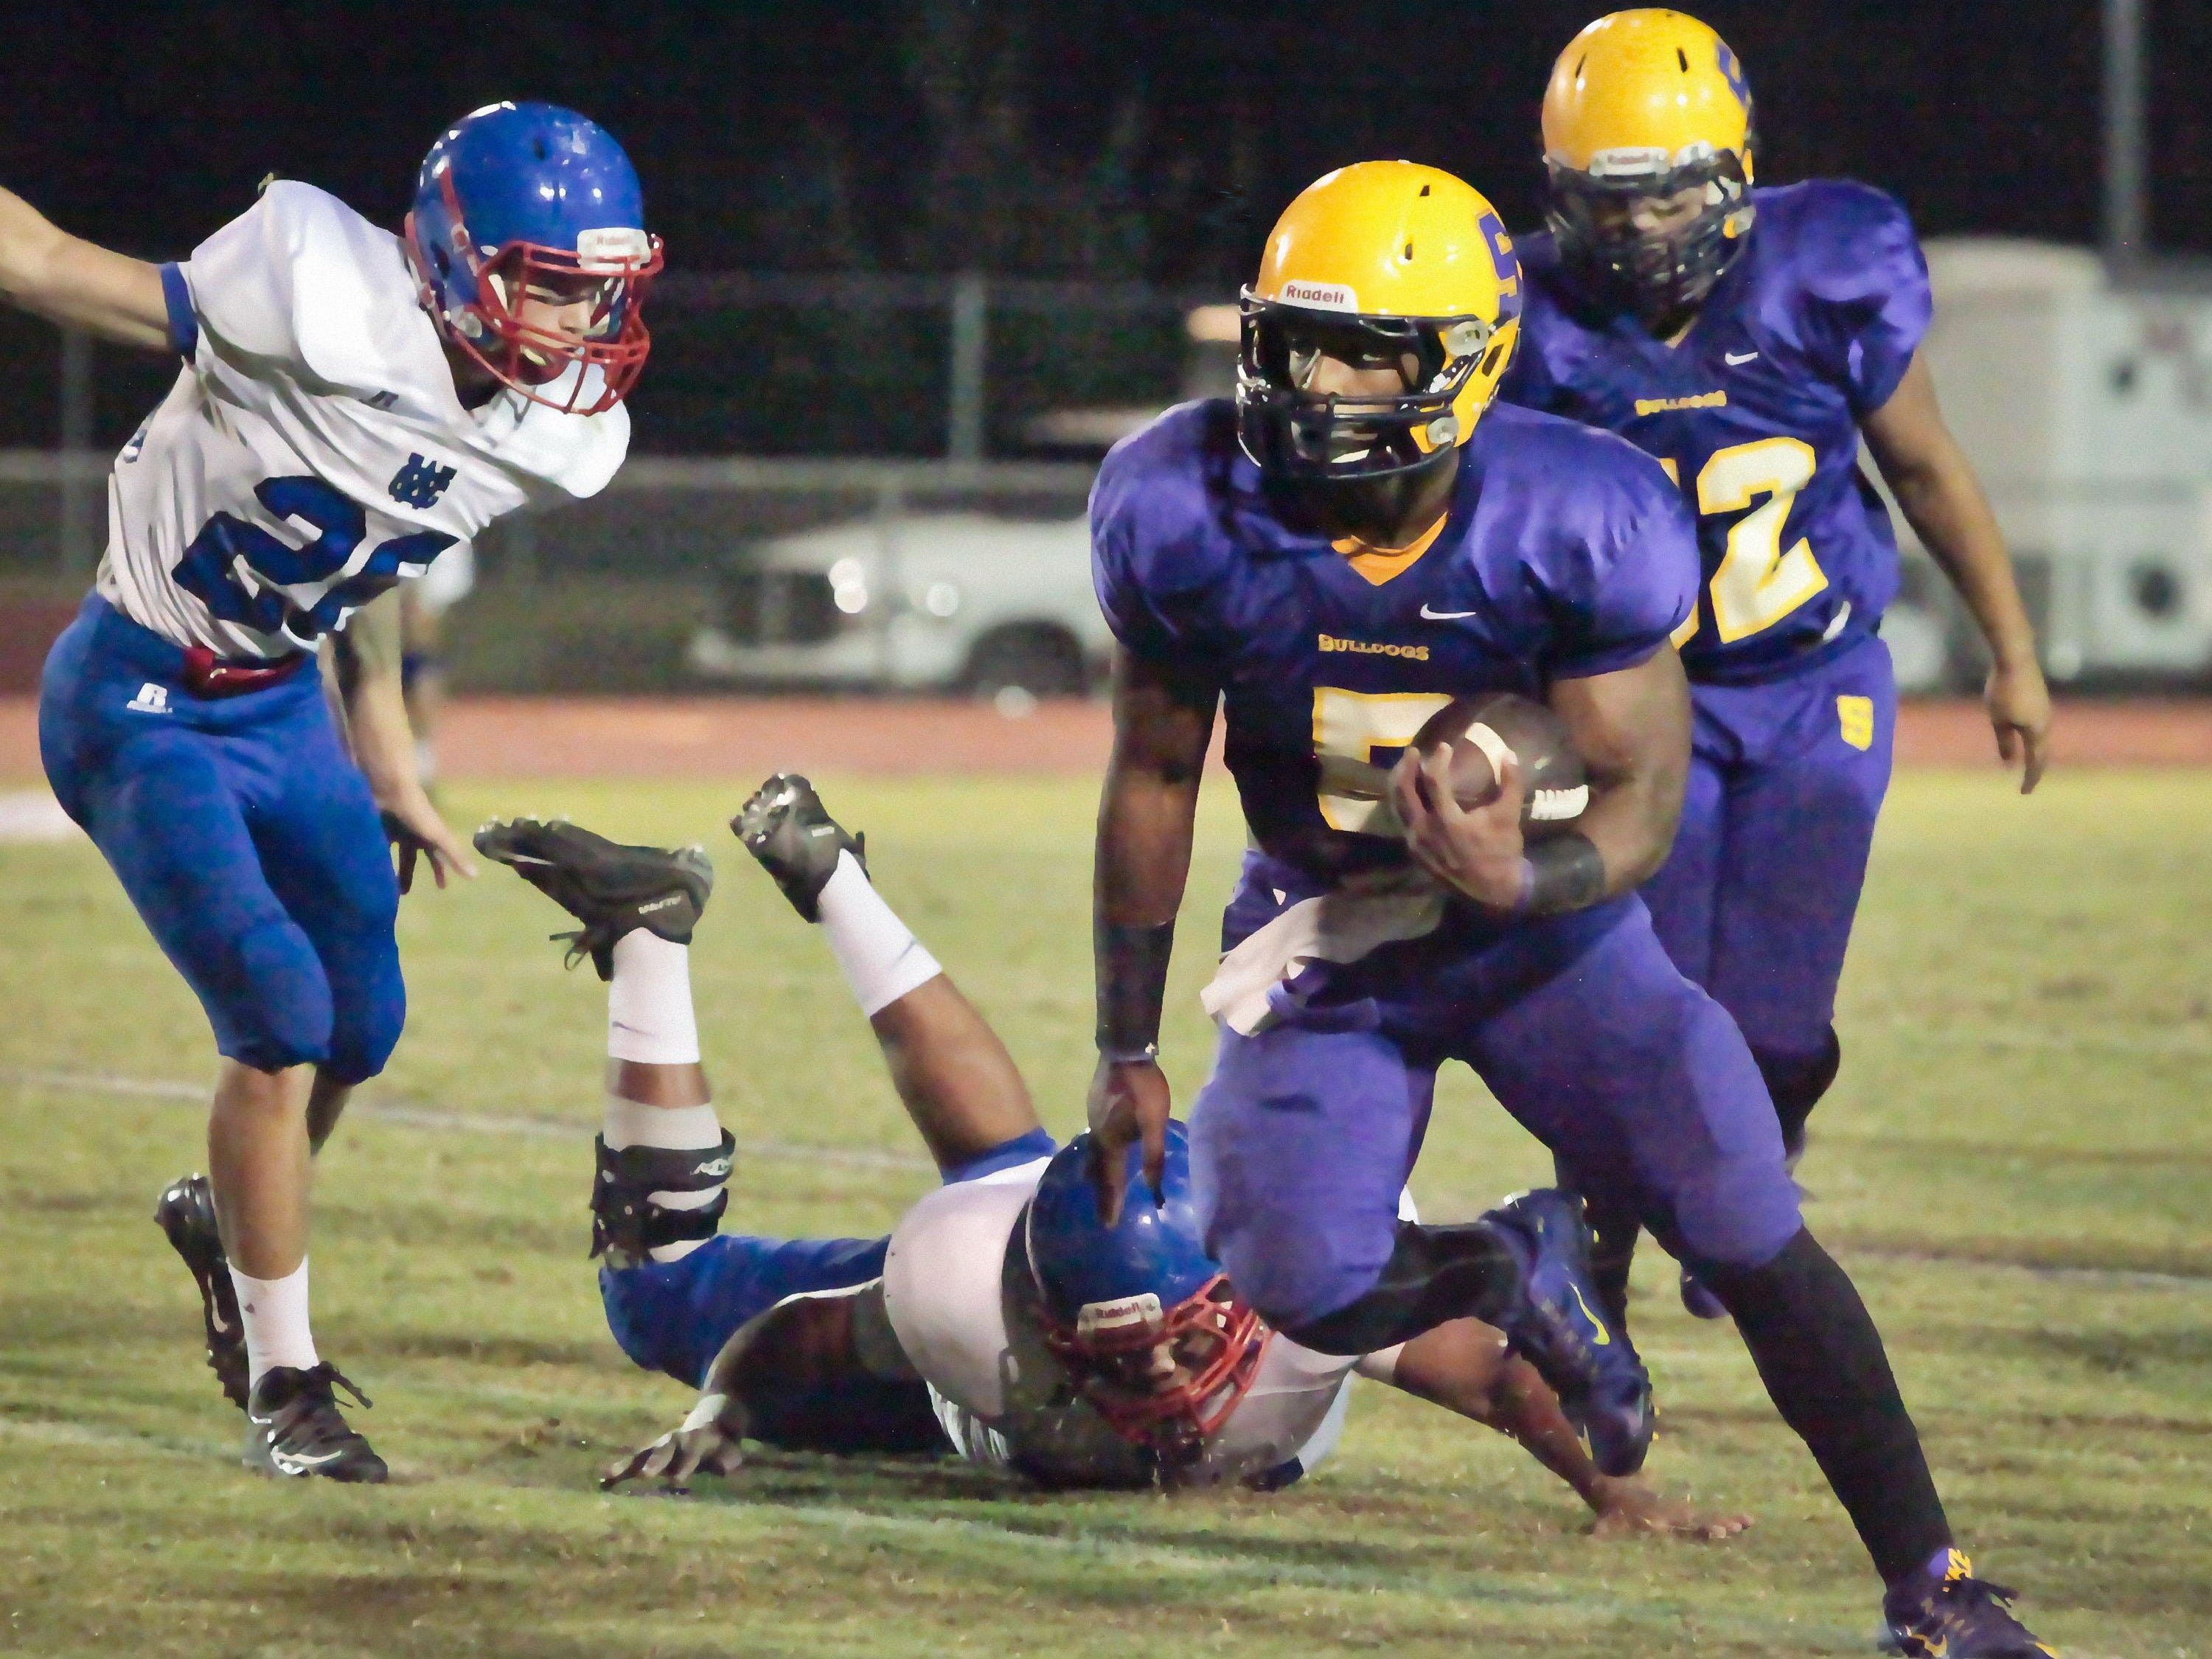 Casey Perkins (5) finds a hole and a path to the end zone.